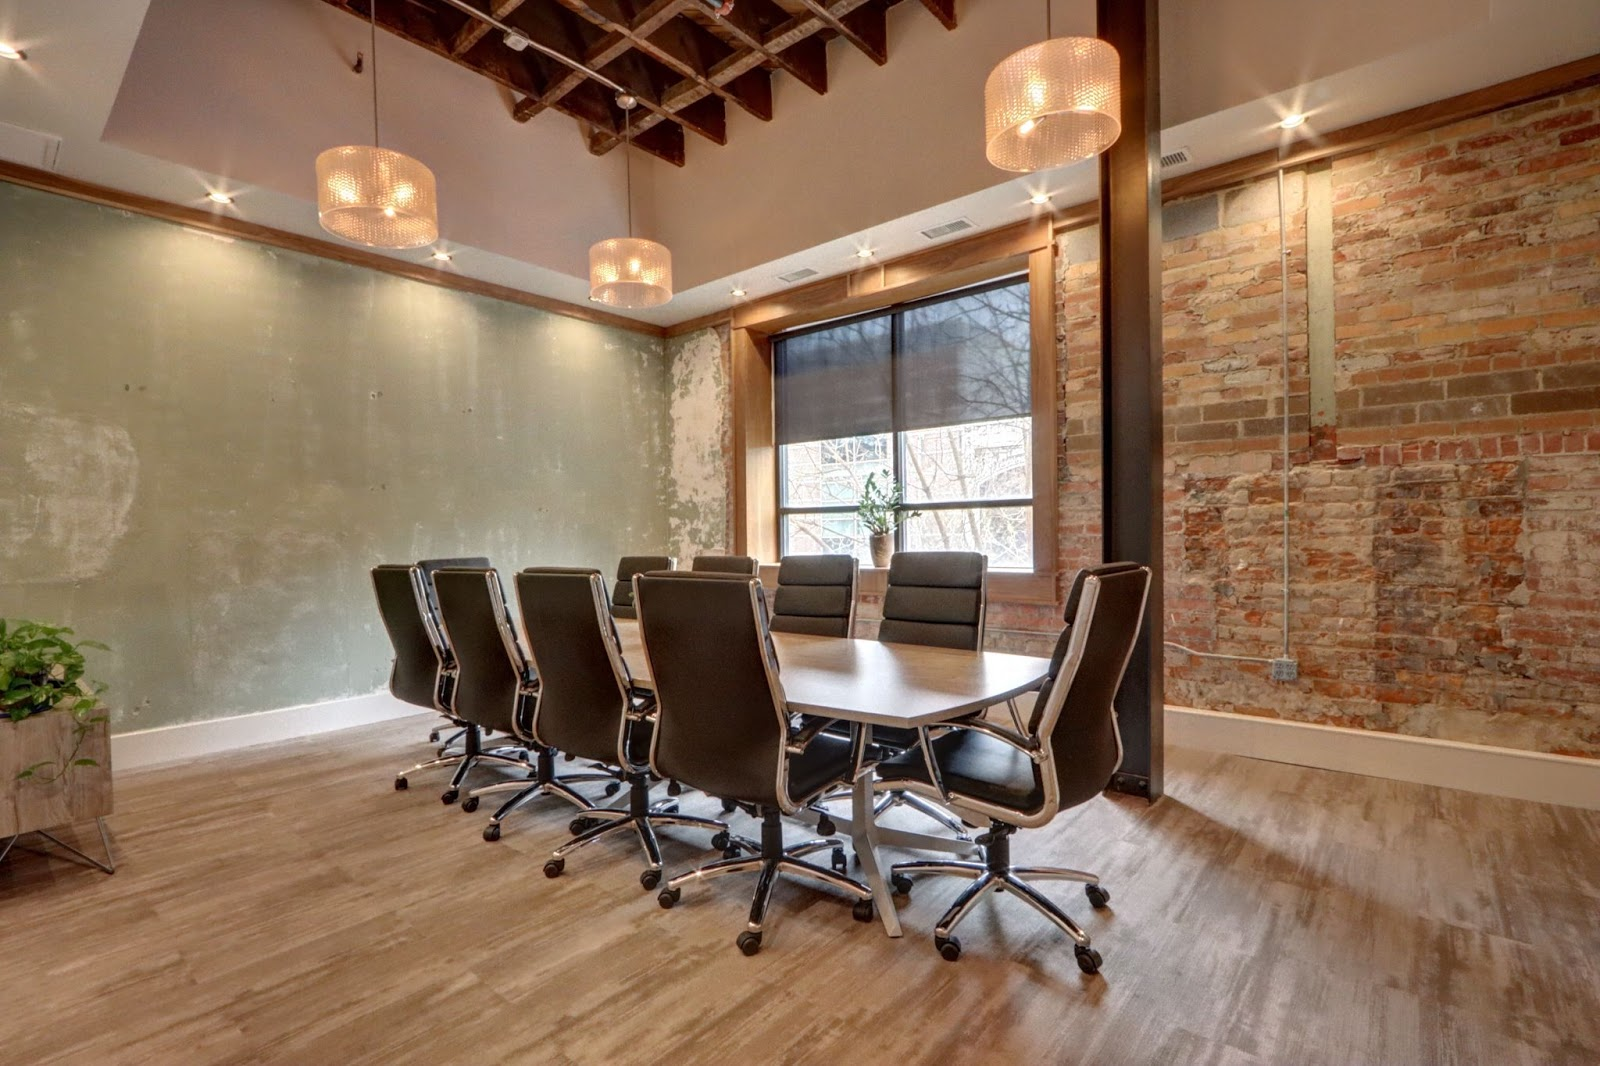 Conference room with stylish lighting